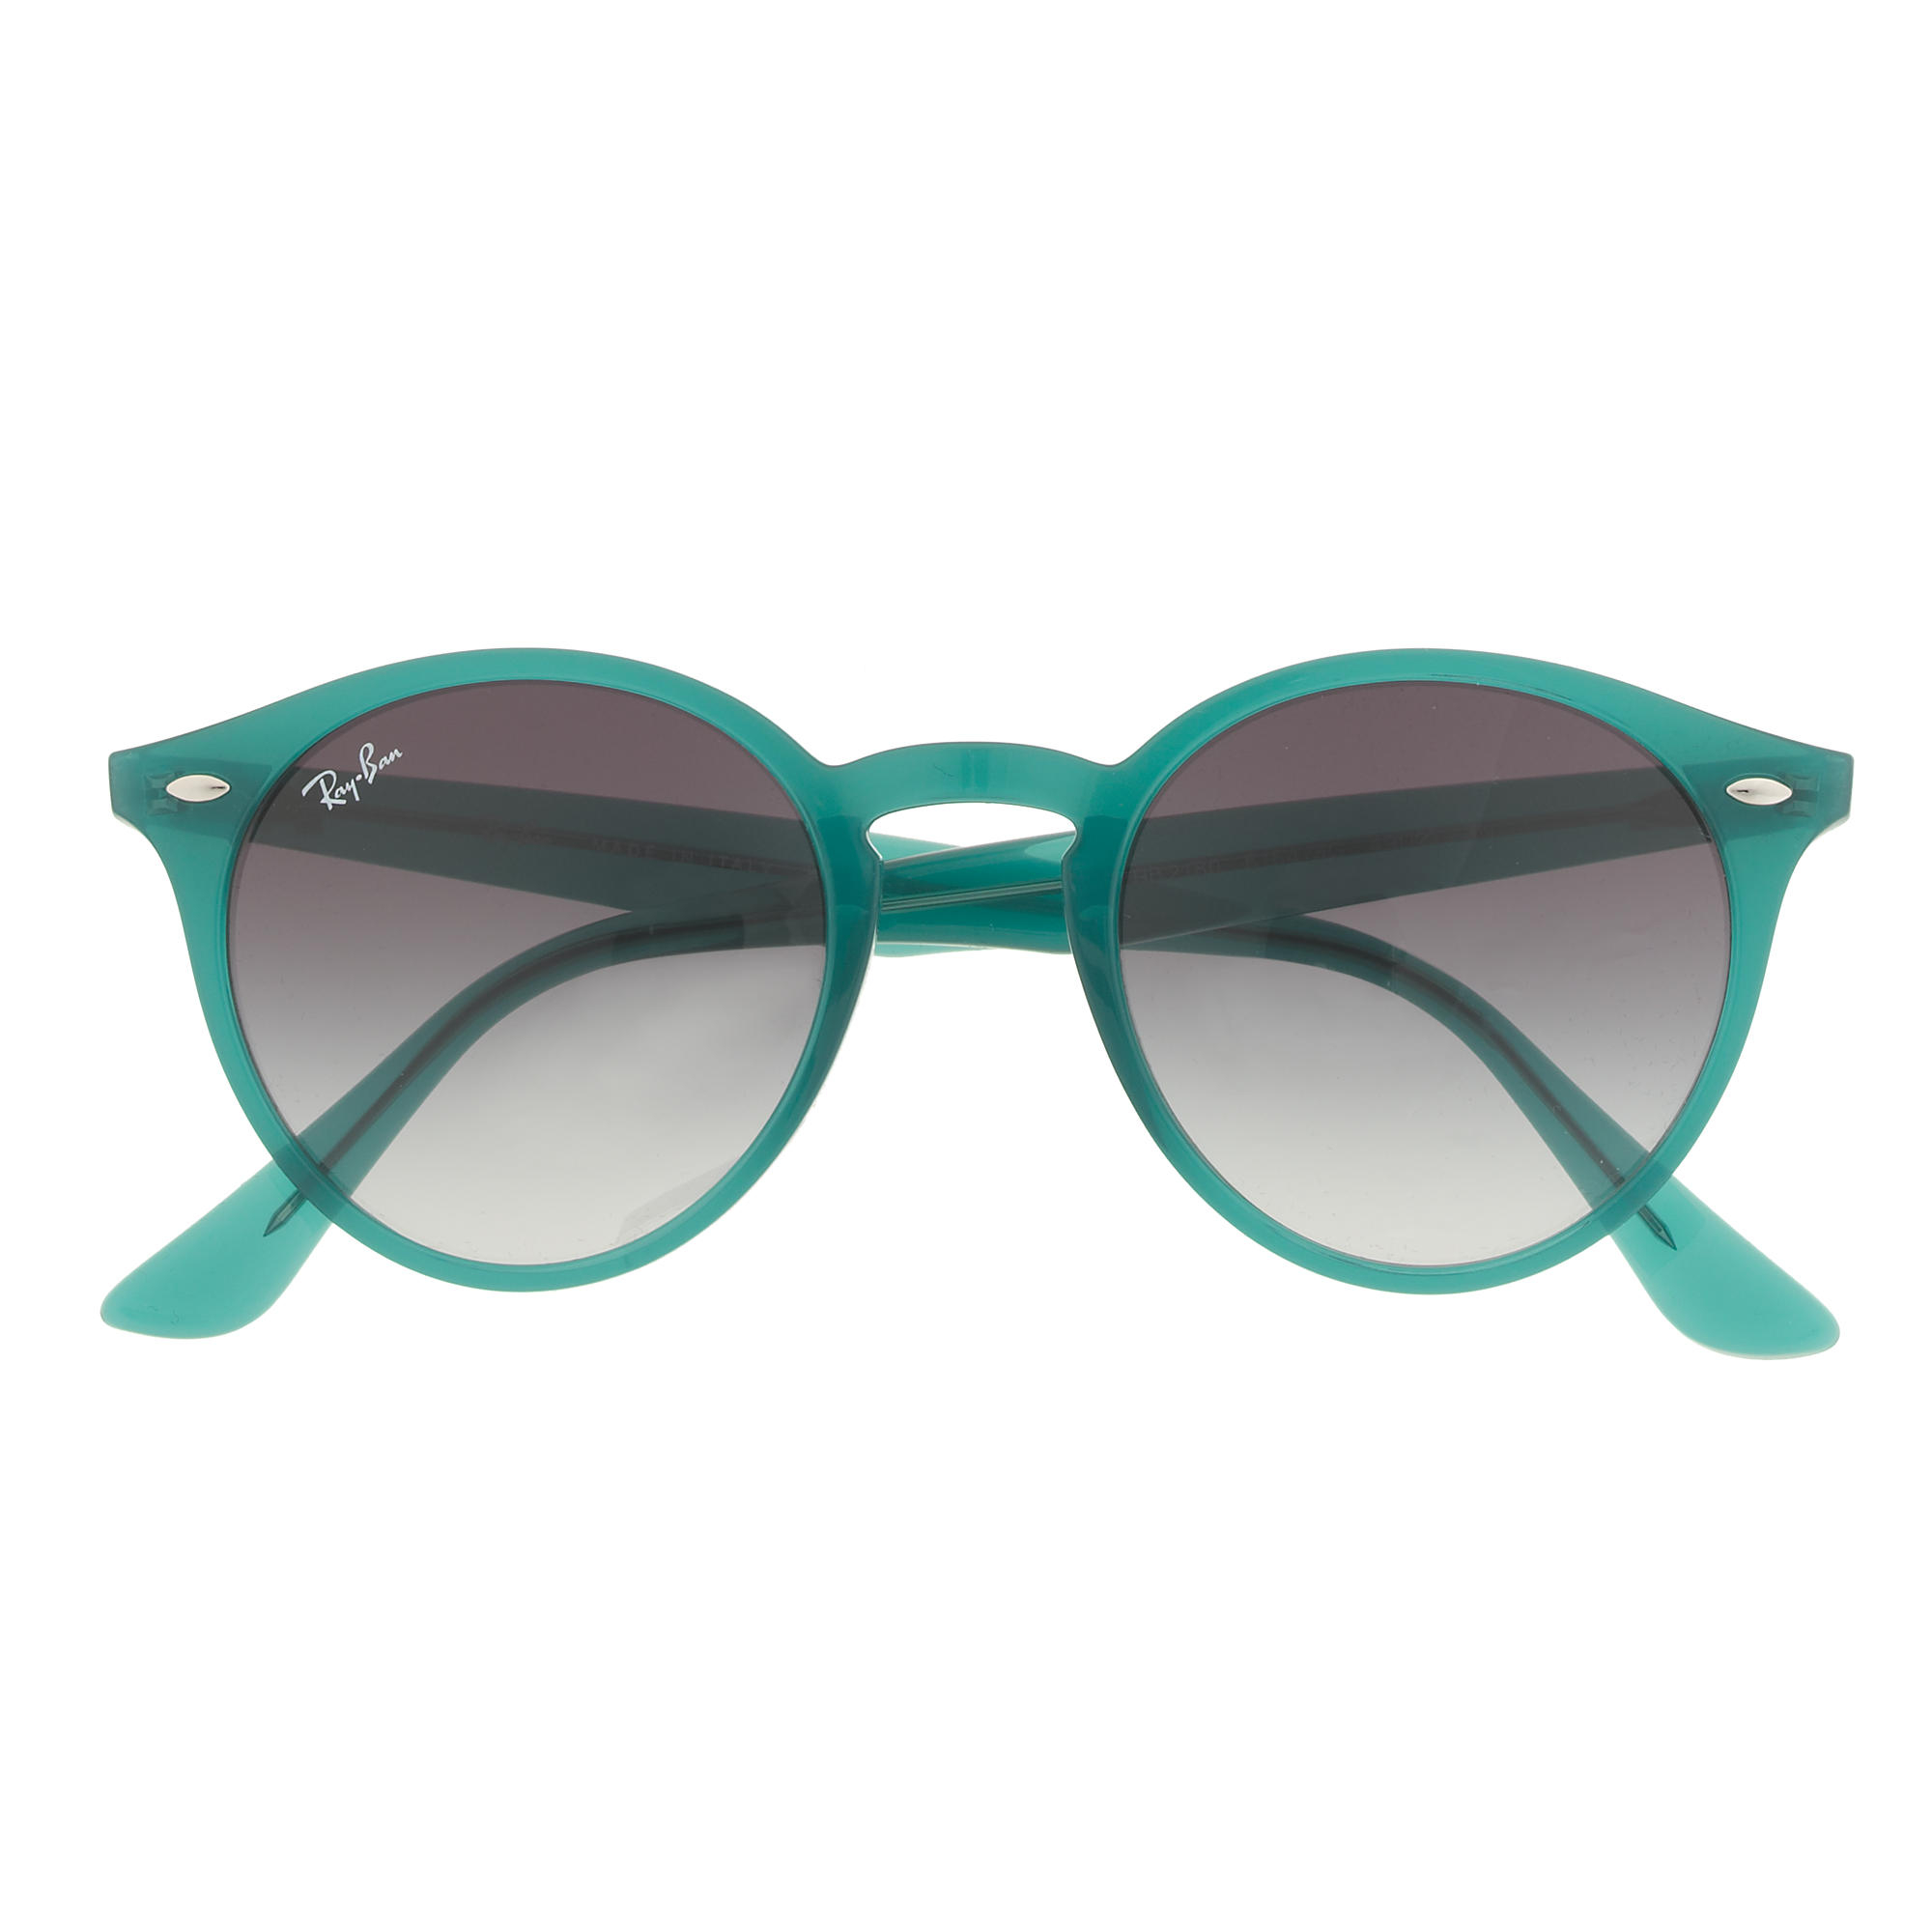 ... ray ban aviators with polarized pink lenses at j crew ...